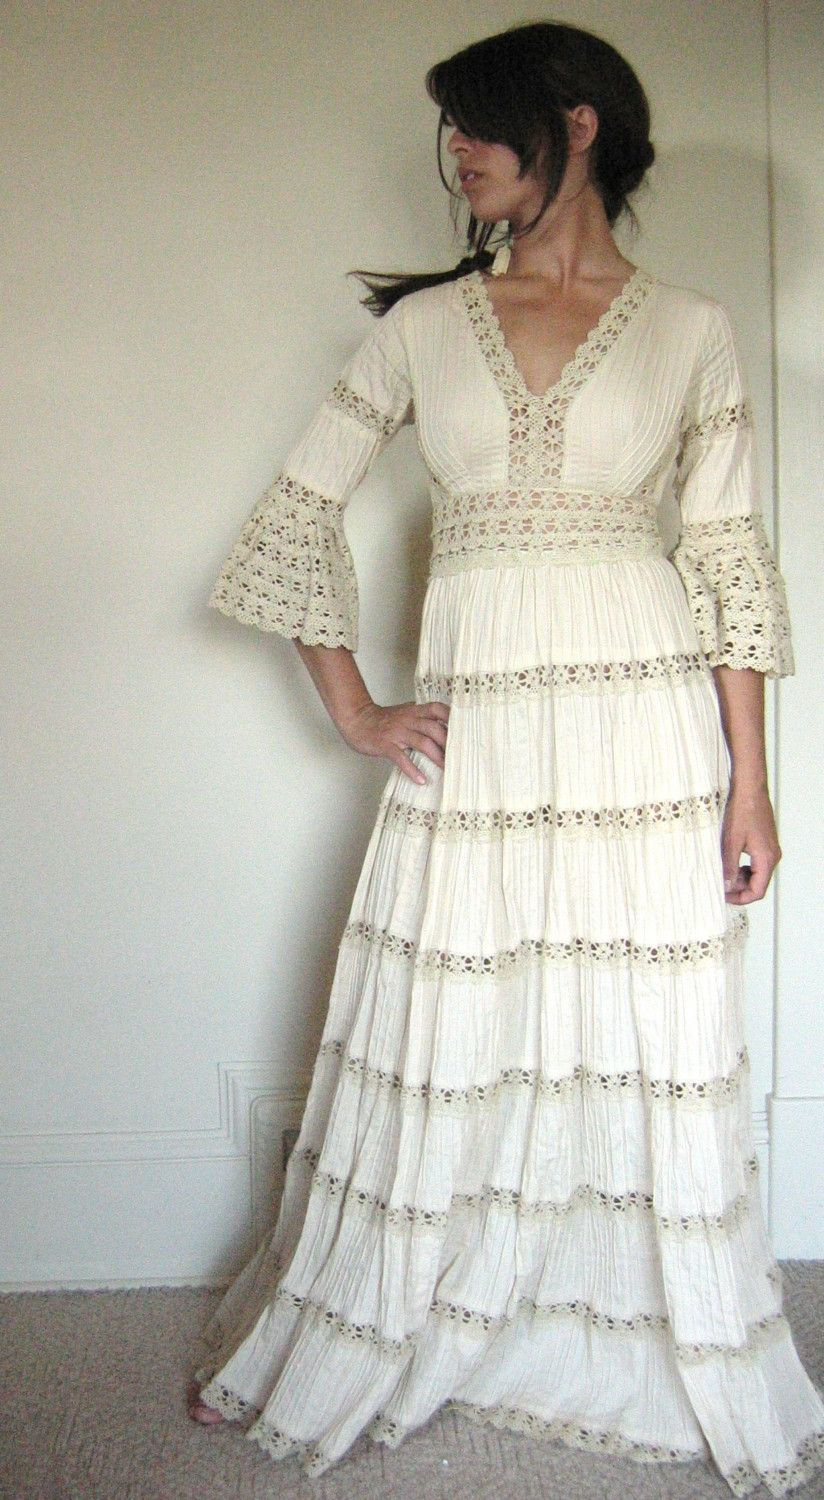 Vintage Mexican Dress | Styles I <3 | Pinterest | Schöne kleider ...